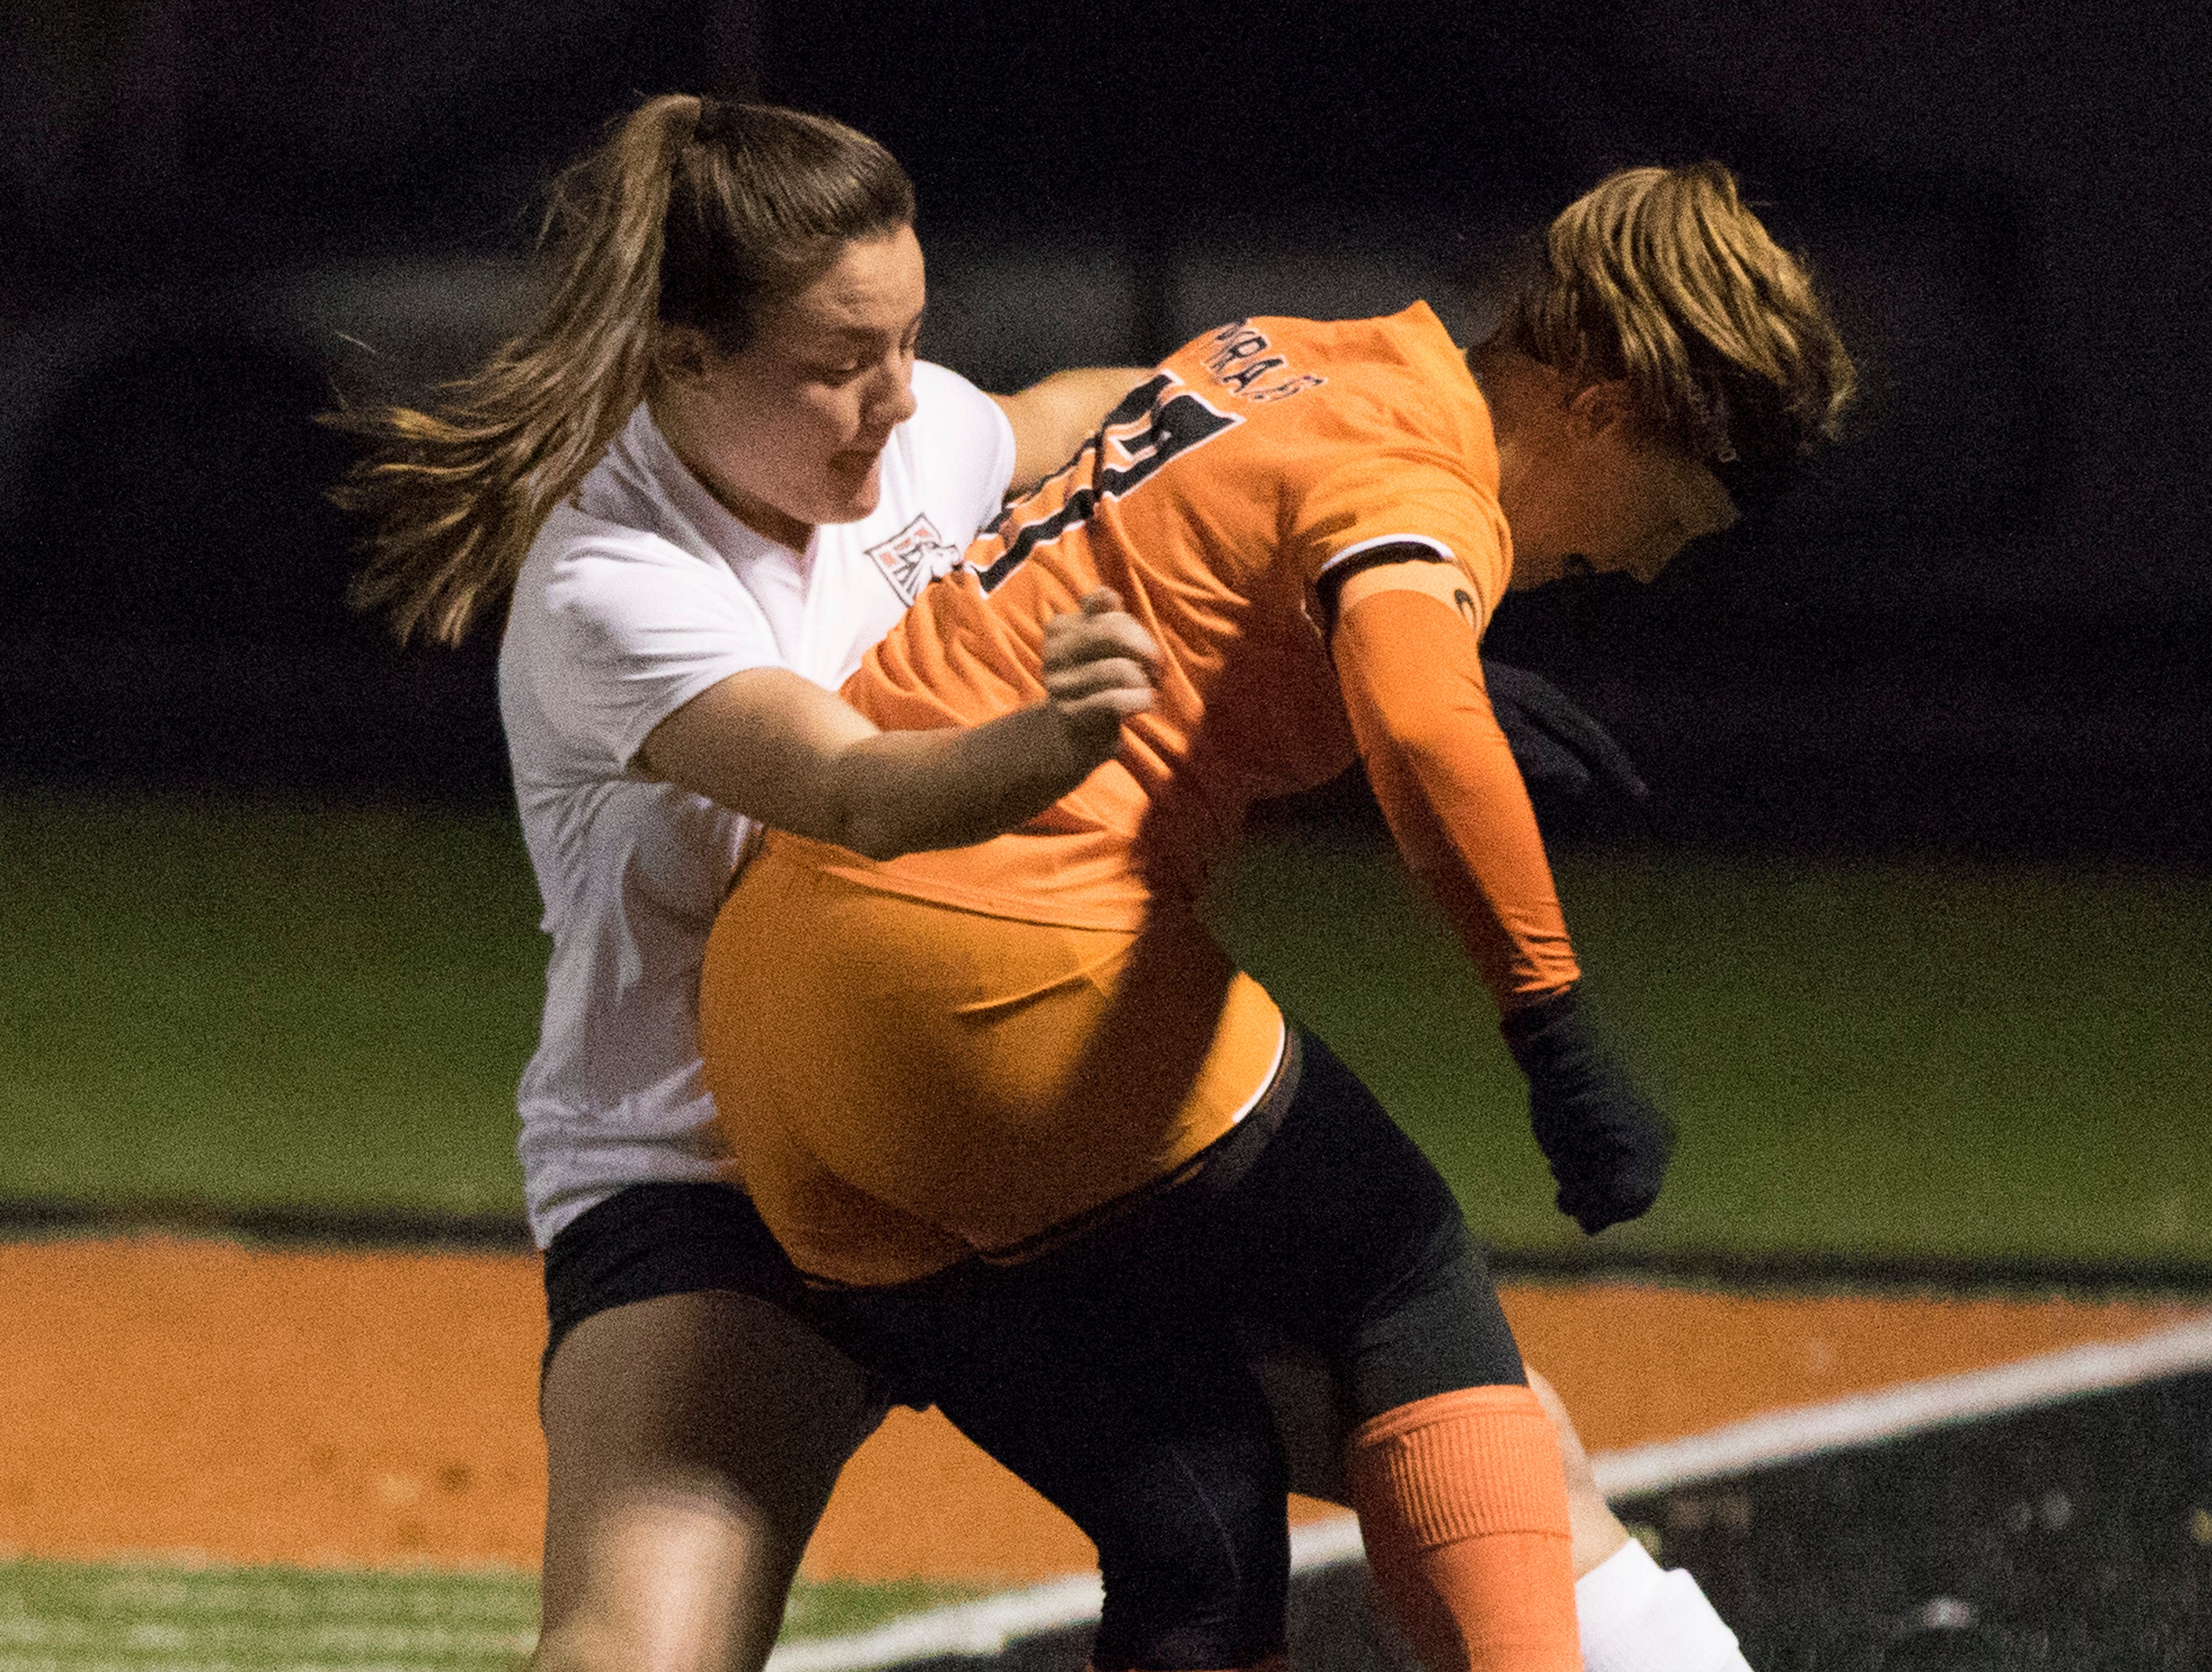 Westfall's Ariane Sias and Wheelersburg's Sophie Hagans battle for the ball during the first half of a division three district semifinals soccer matchup between the two schools Tuesday night. Westfall fell to Wheelersburg 1-0.